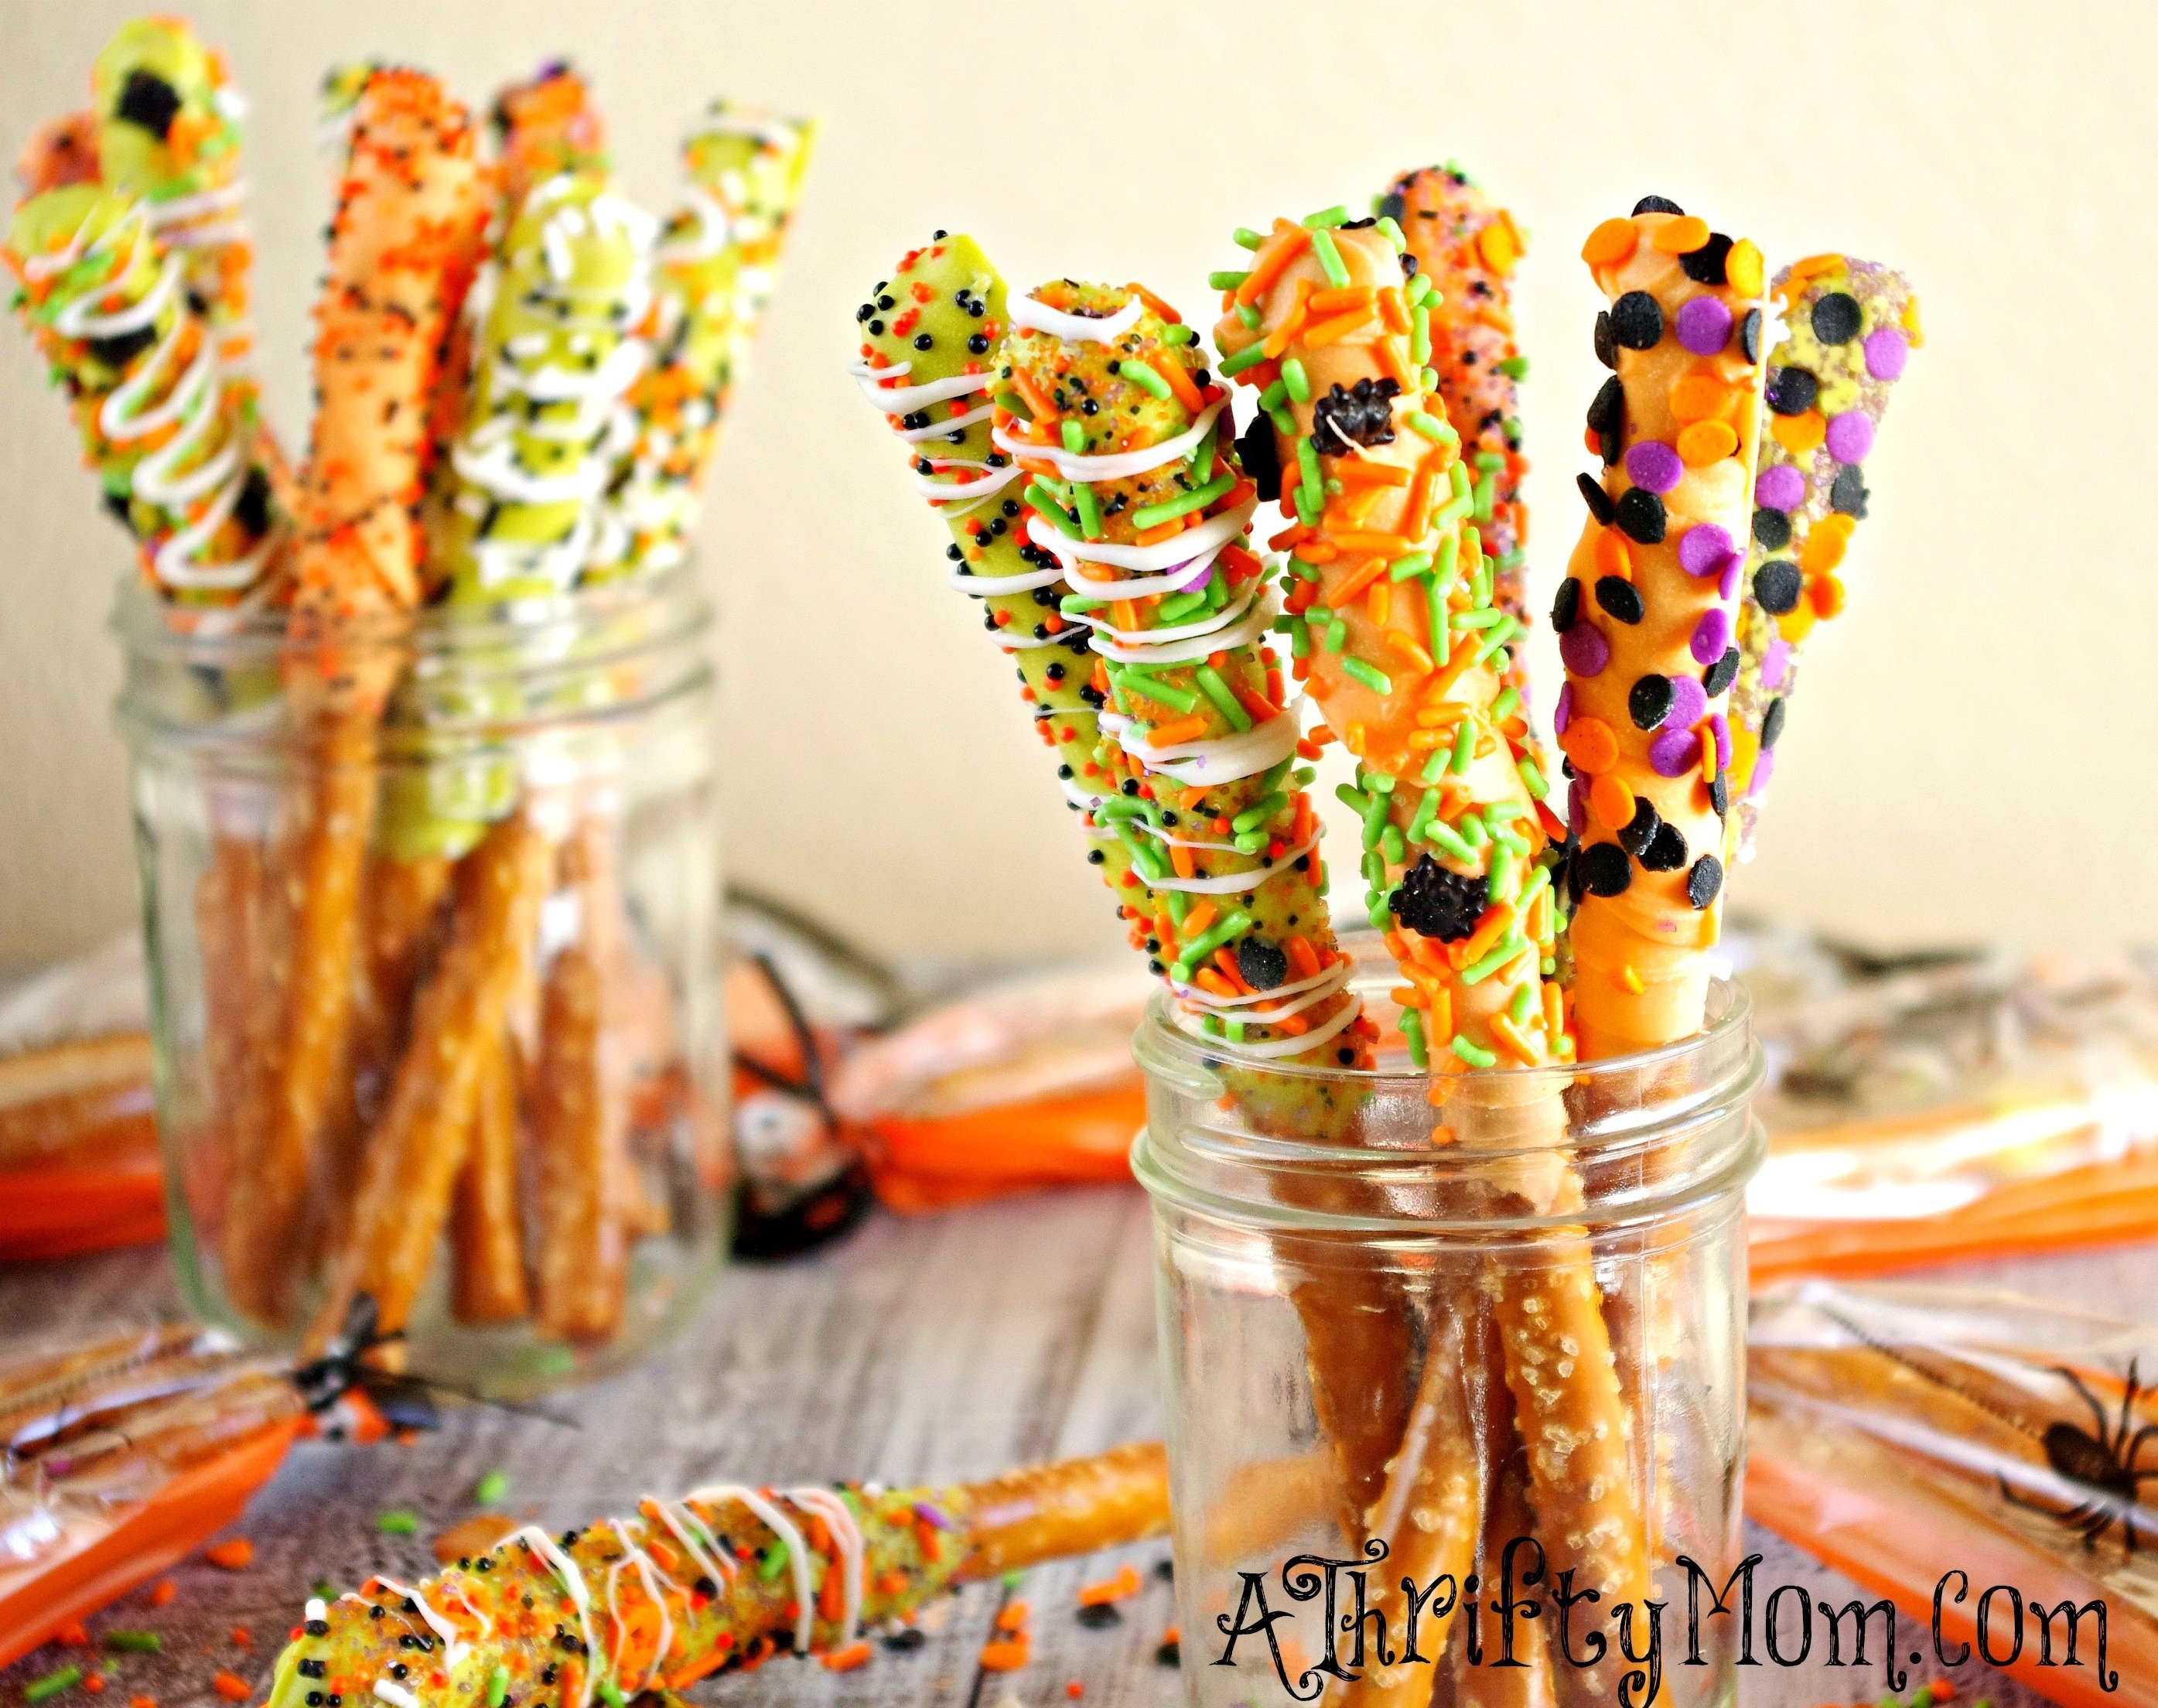 10 Beautiful Halloween Treat Ideas For Kids Party halloween party ideas archives a thrifty mom recipes crafts 2020